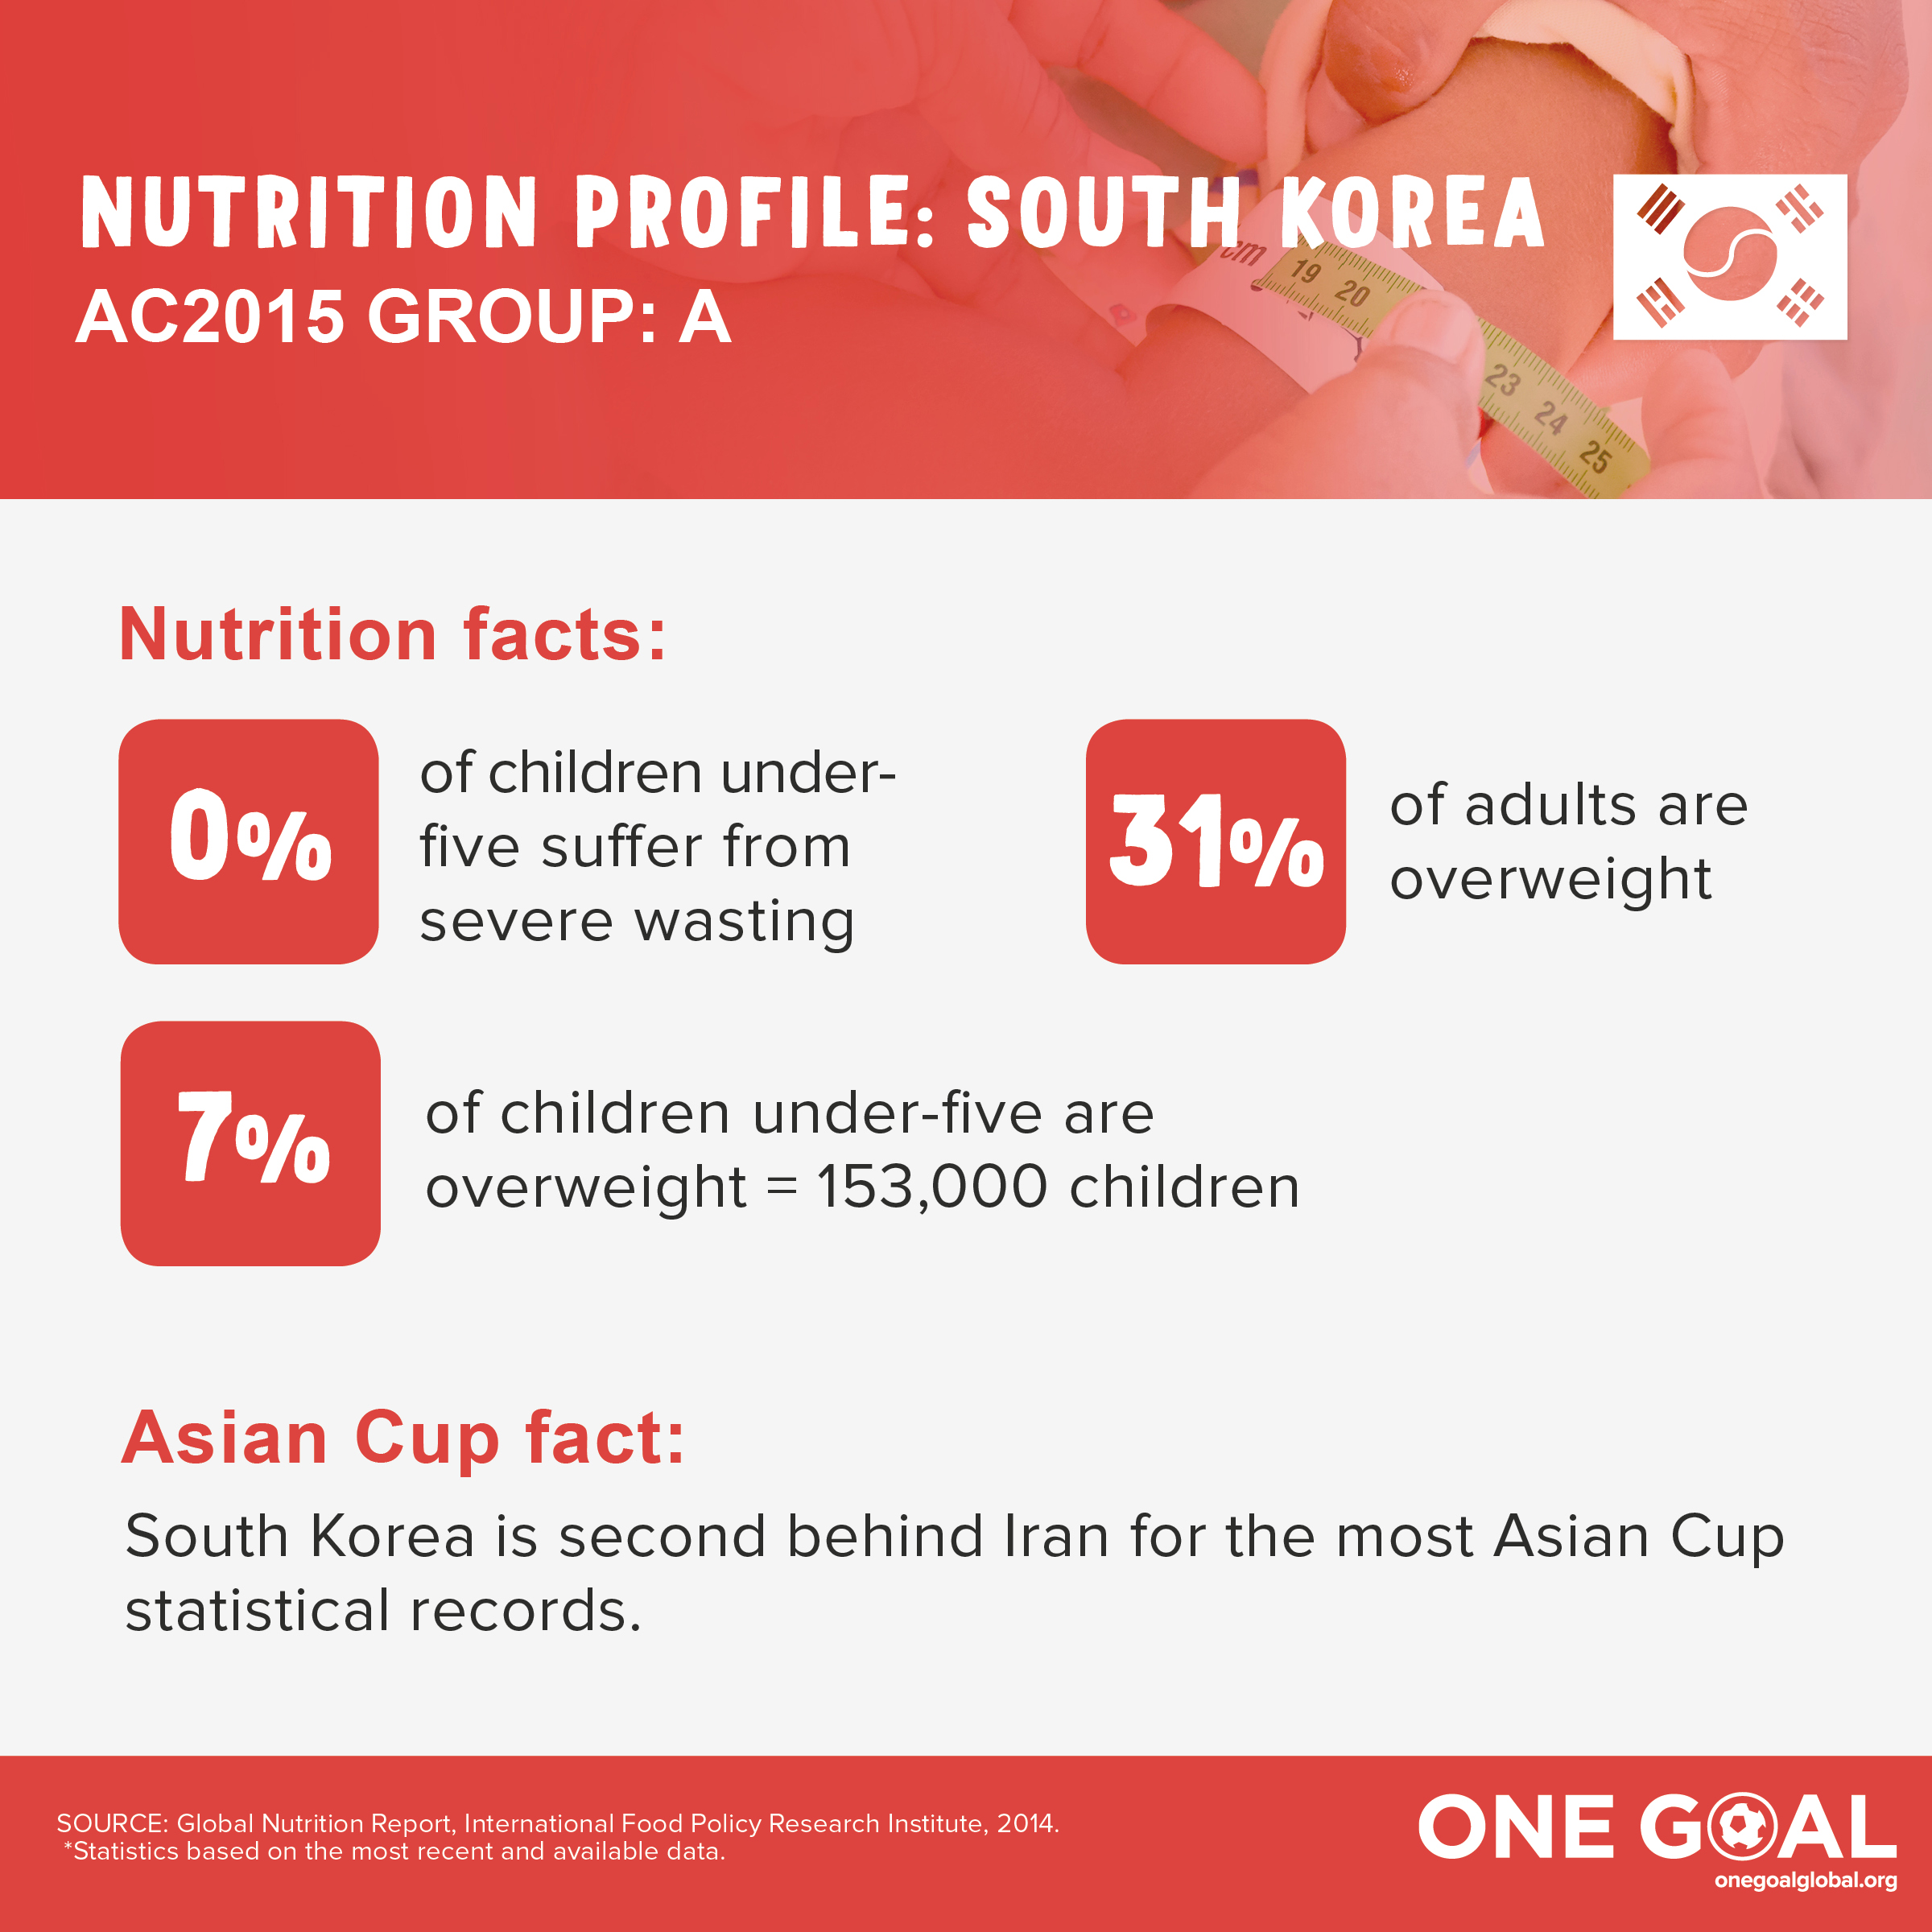 GroupA_nutritionprofile_SouthKorea.jpg